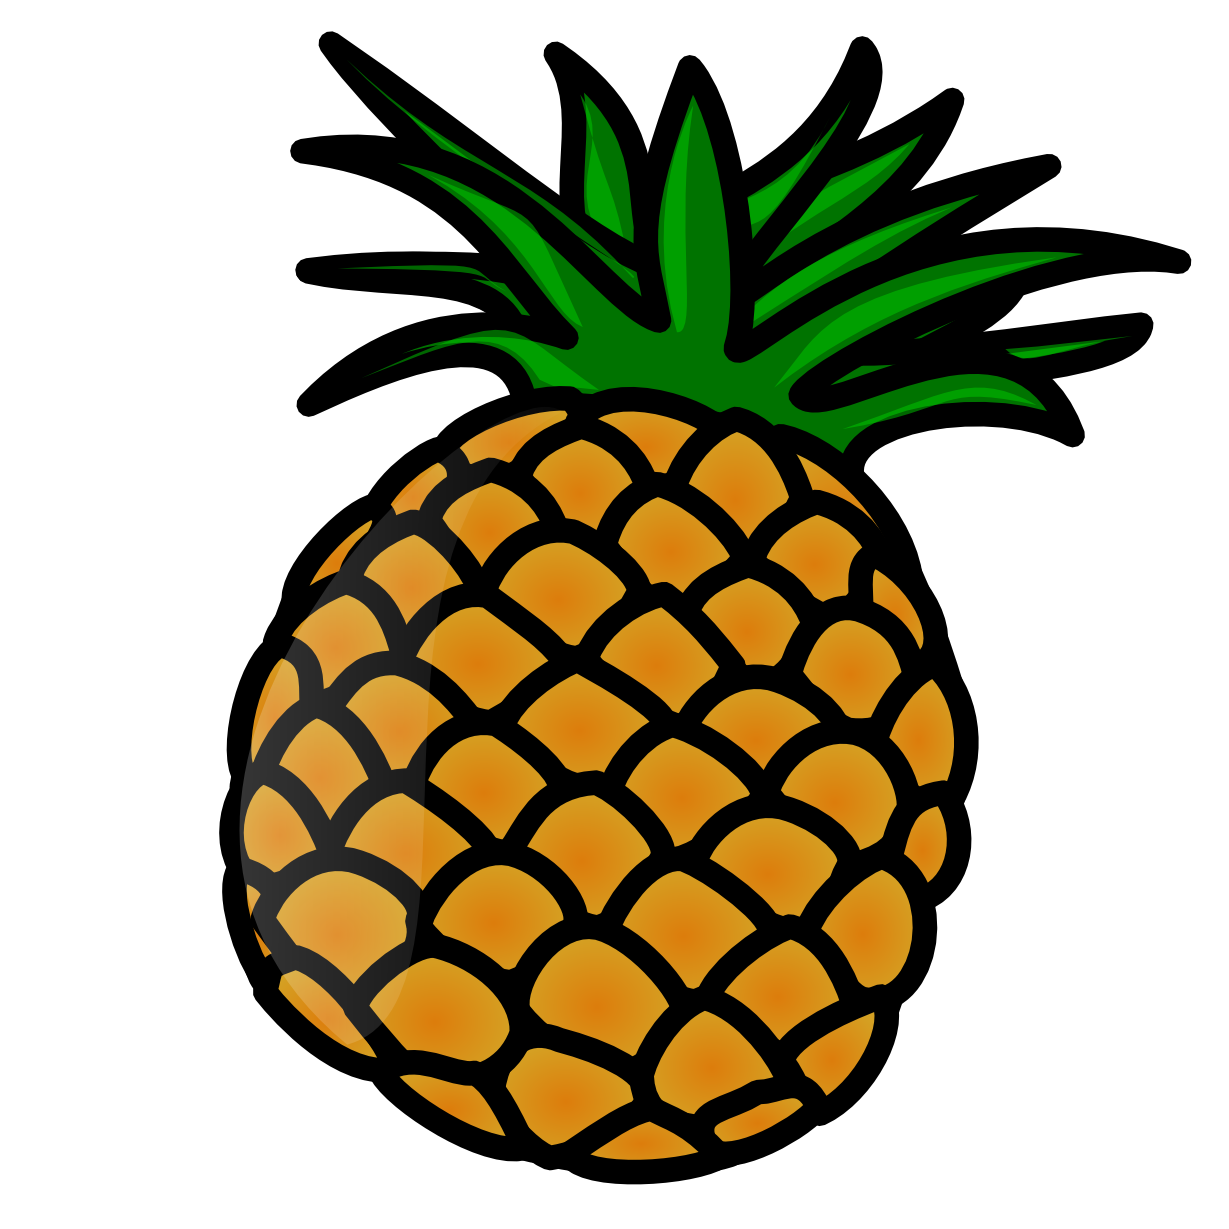 Pineapple clipart. Cartoon clip art png